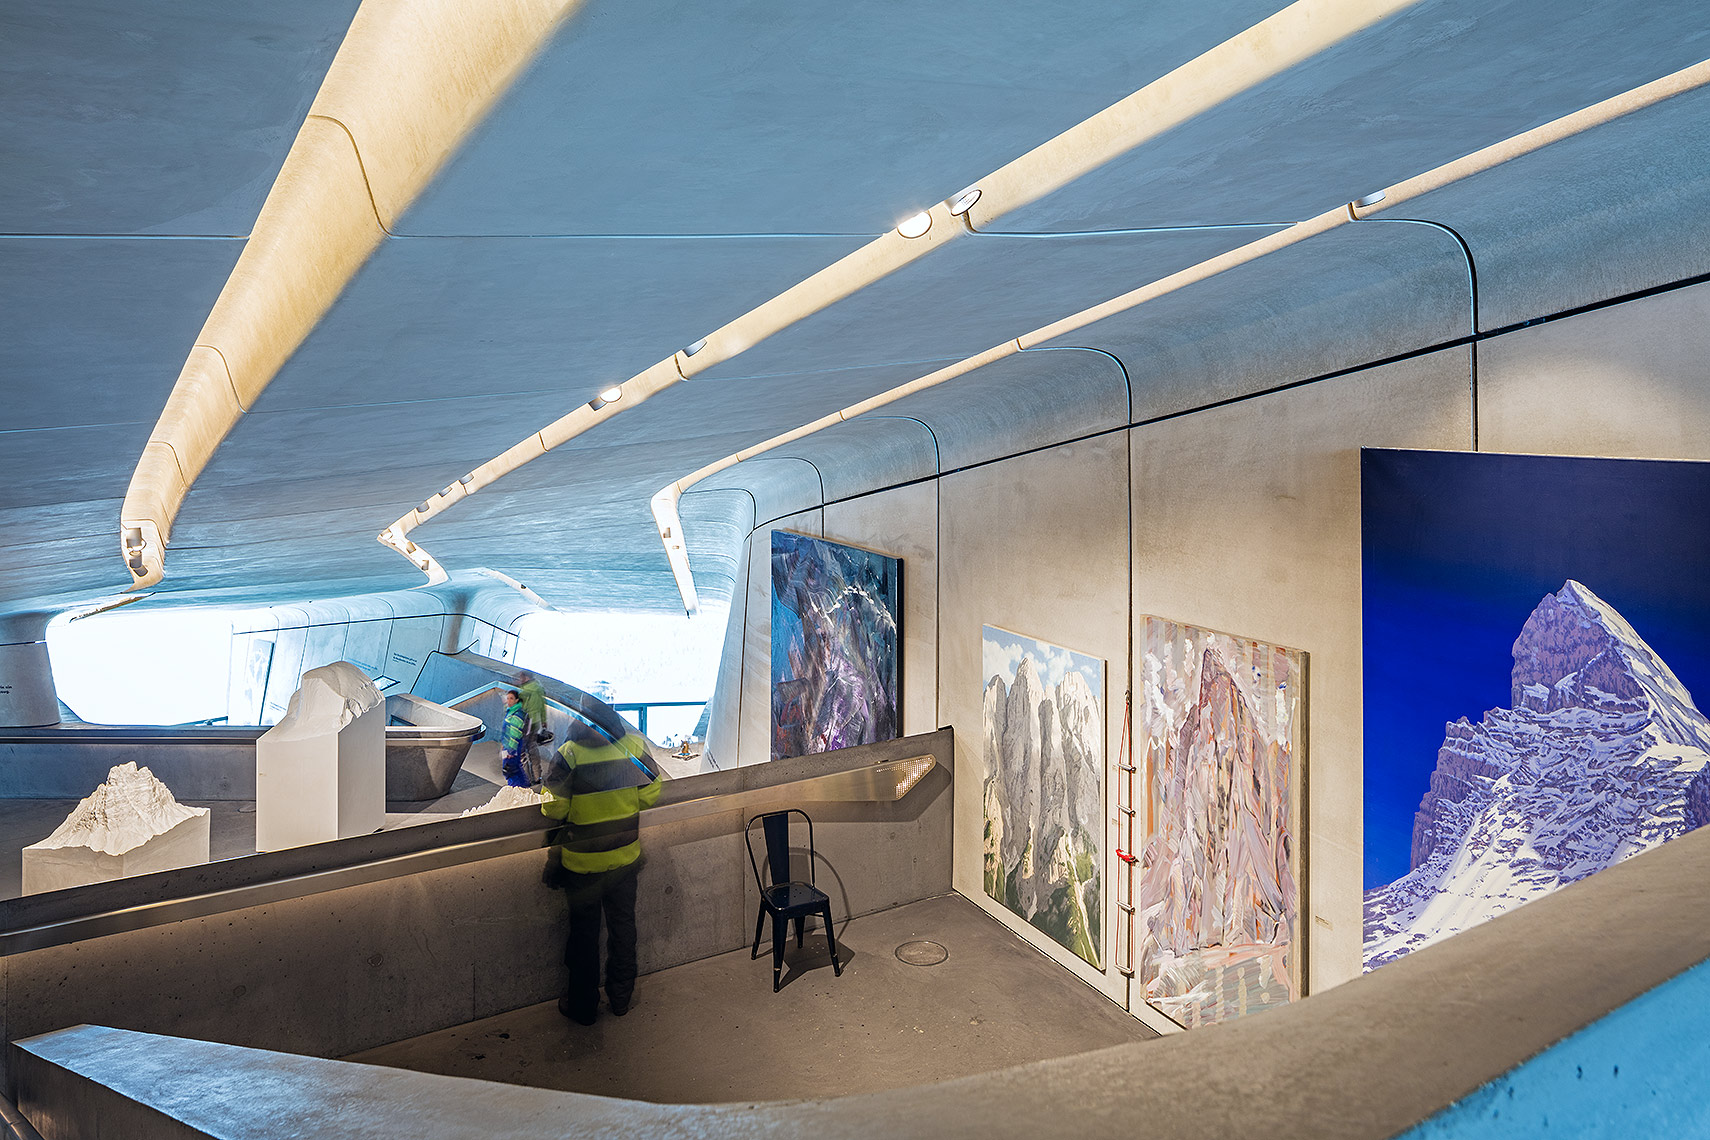 Interiors of the Messner Museum, Peter A. Sellar Architectural Photographer